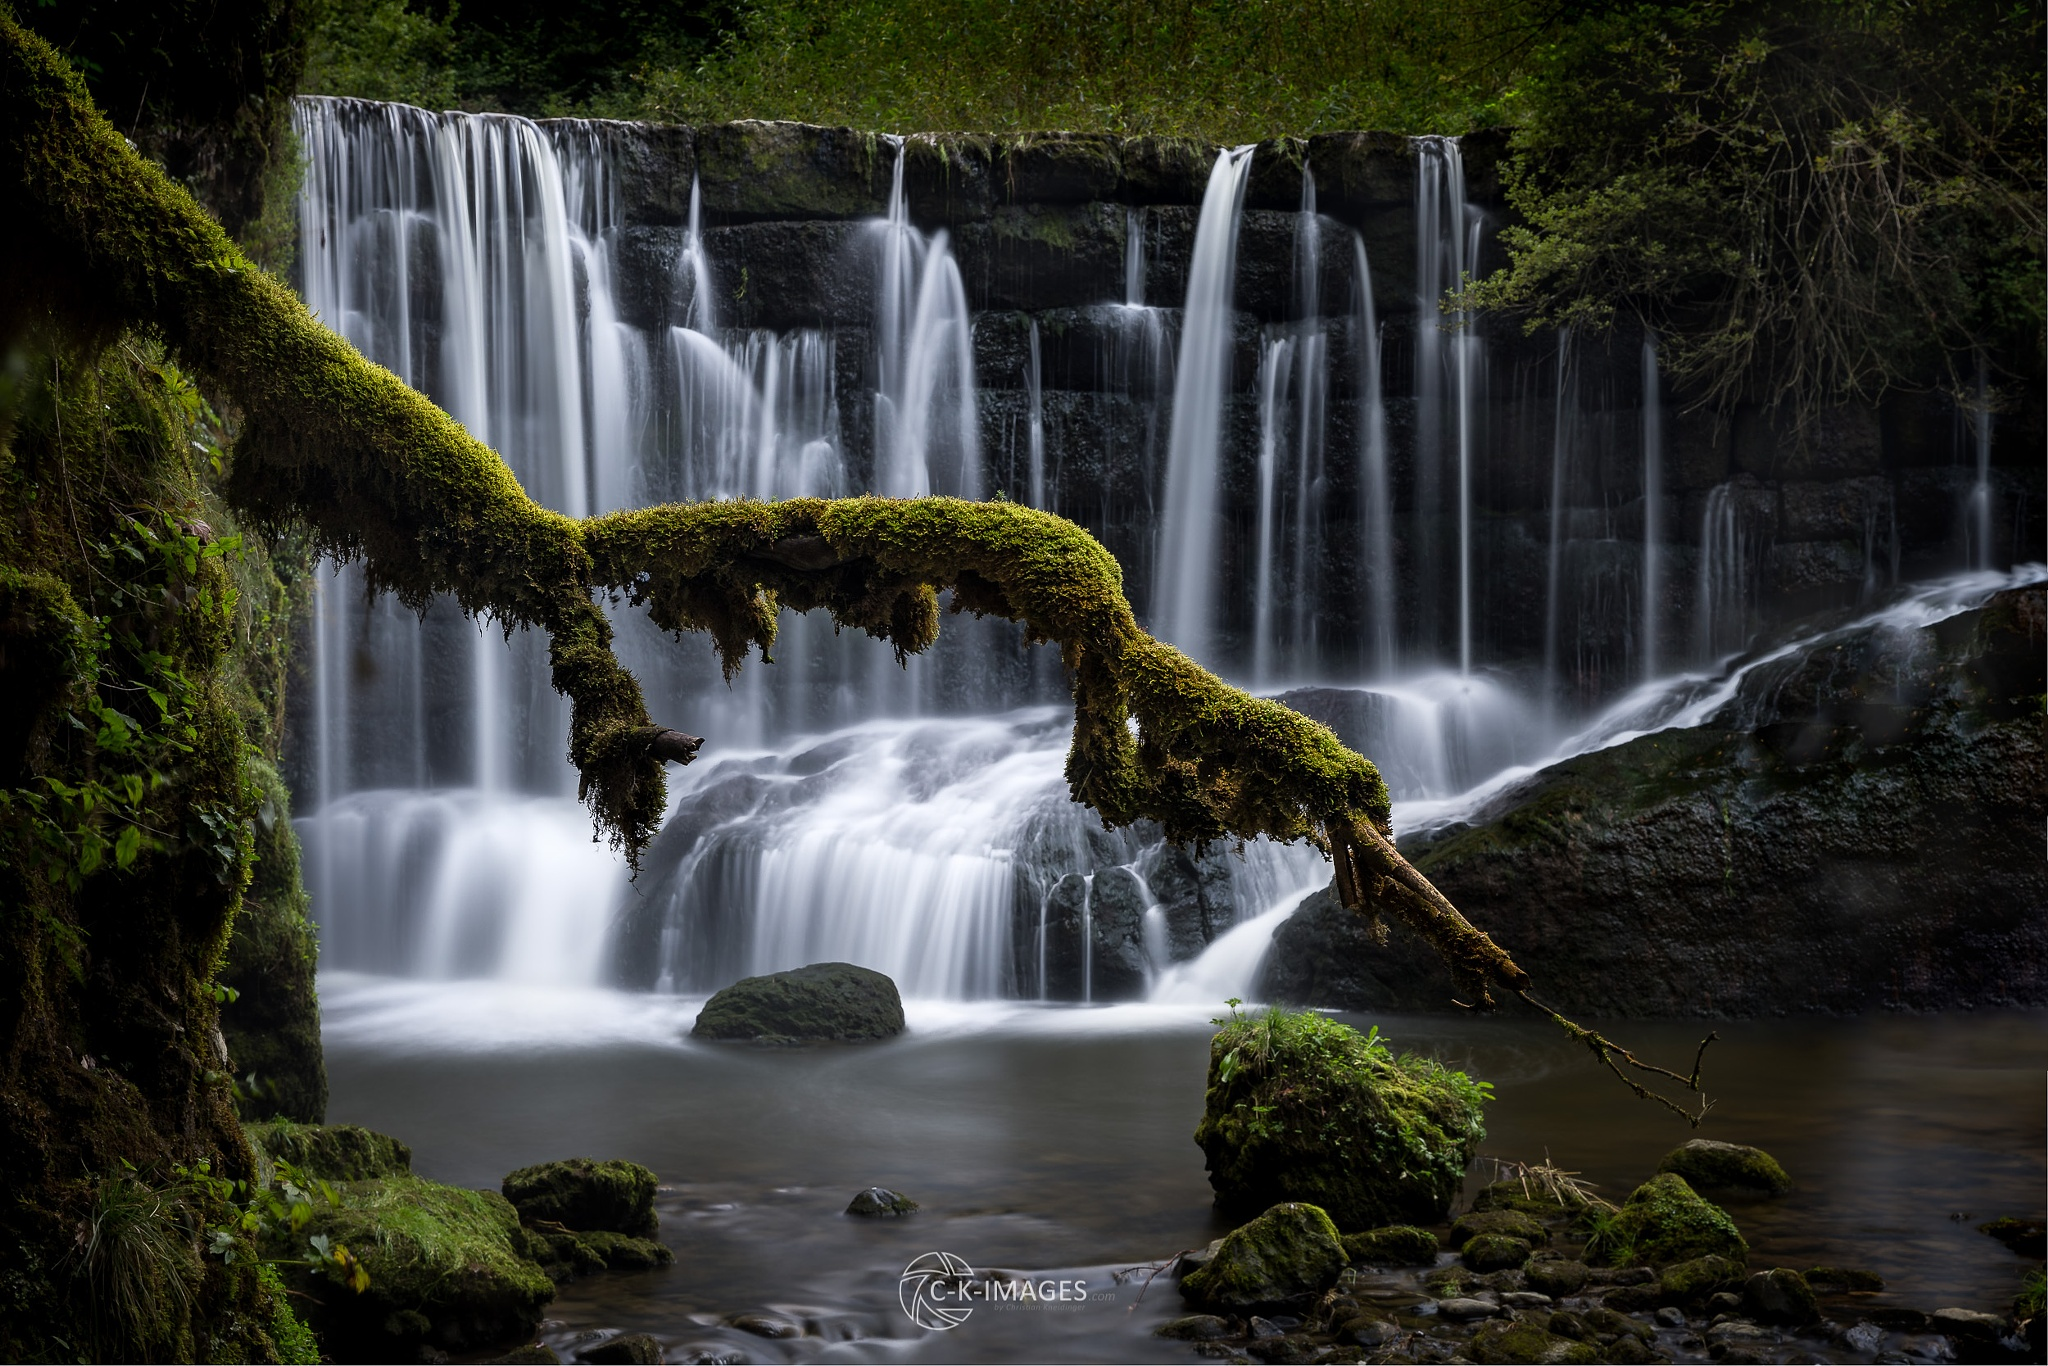 Hidden Waterfall by Christian Kneidinger